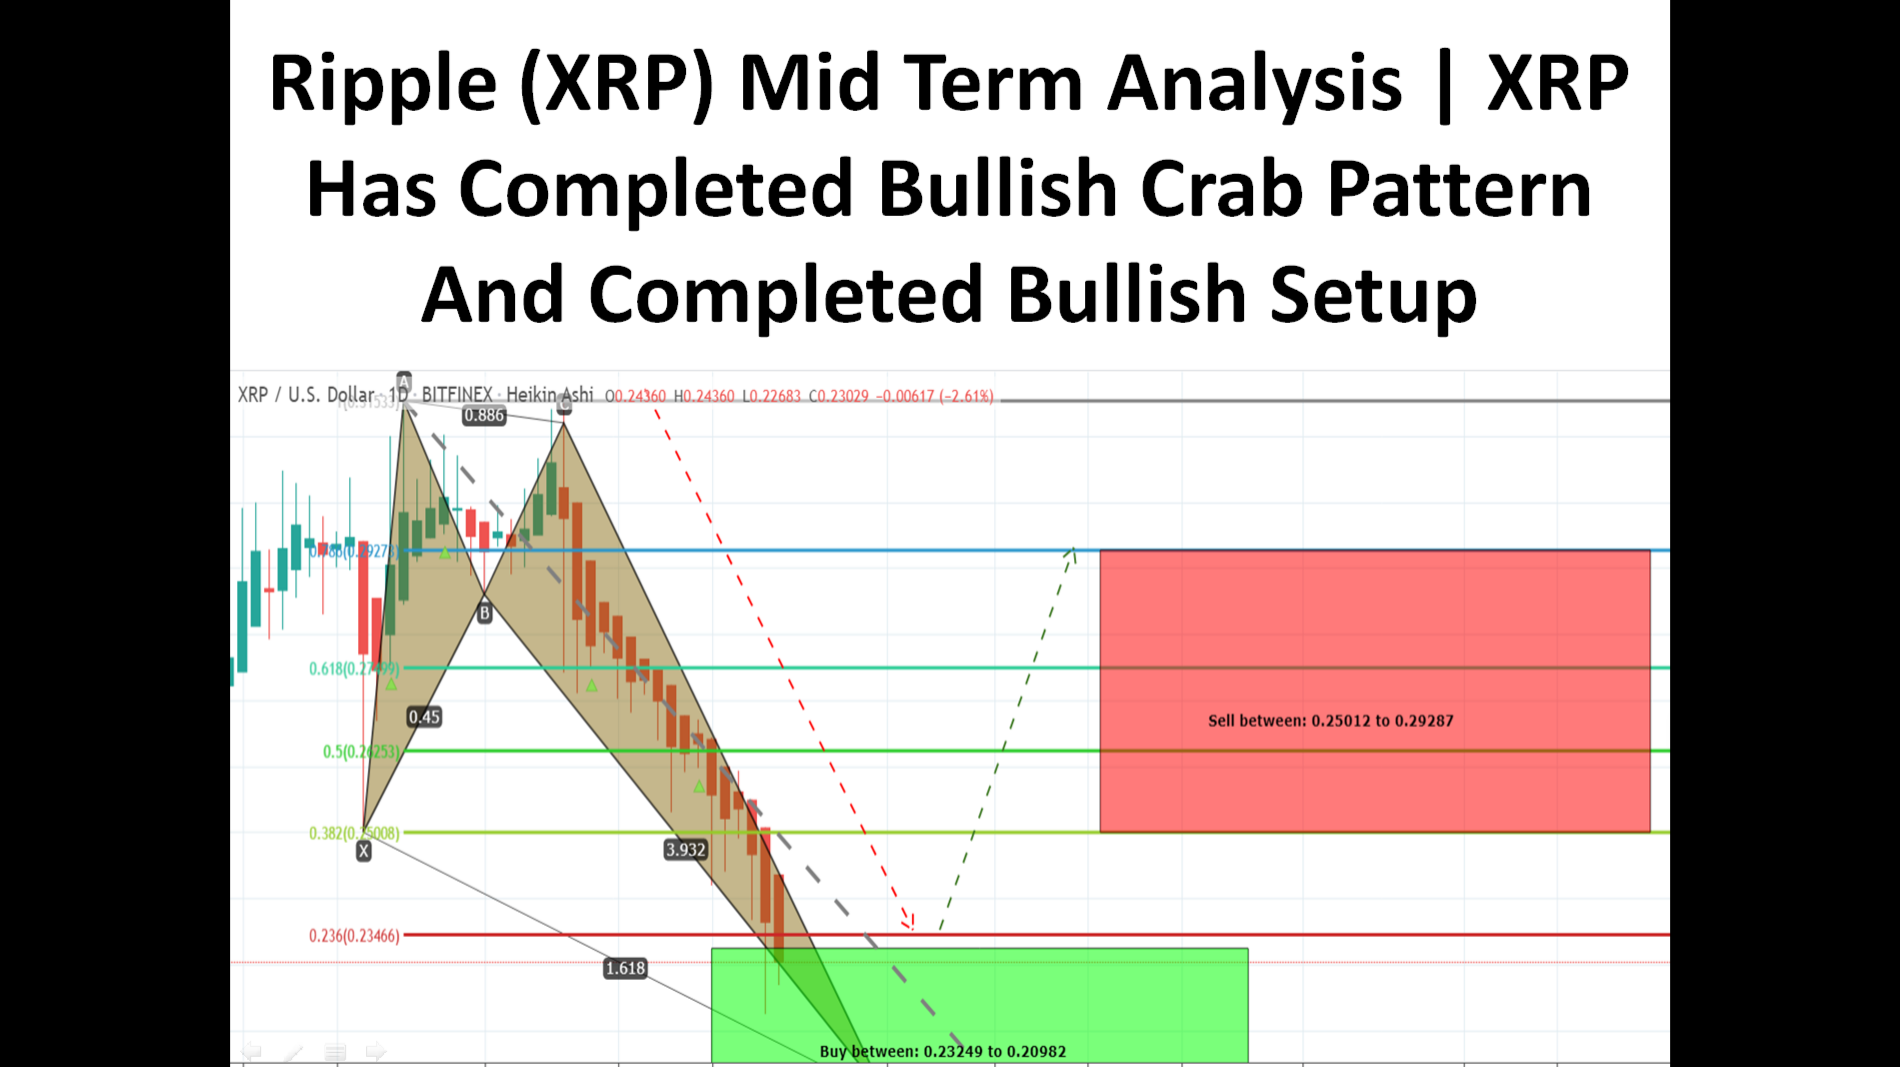 Ripple (XRP) Mid Term Analysis | XRP Has Formed Bullish Crab Pattern And Entered In Potential Reversal Zone